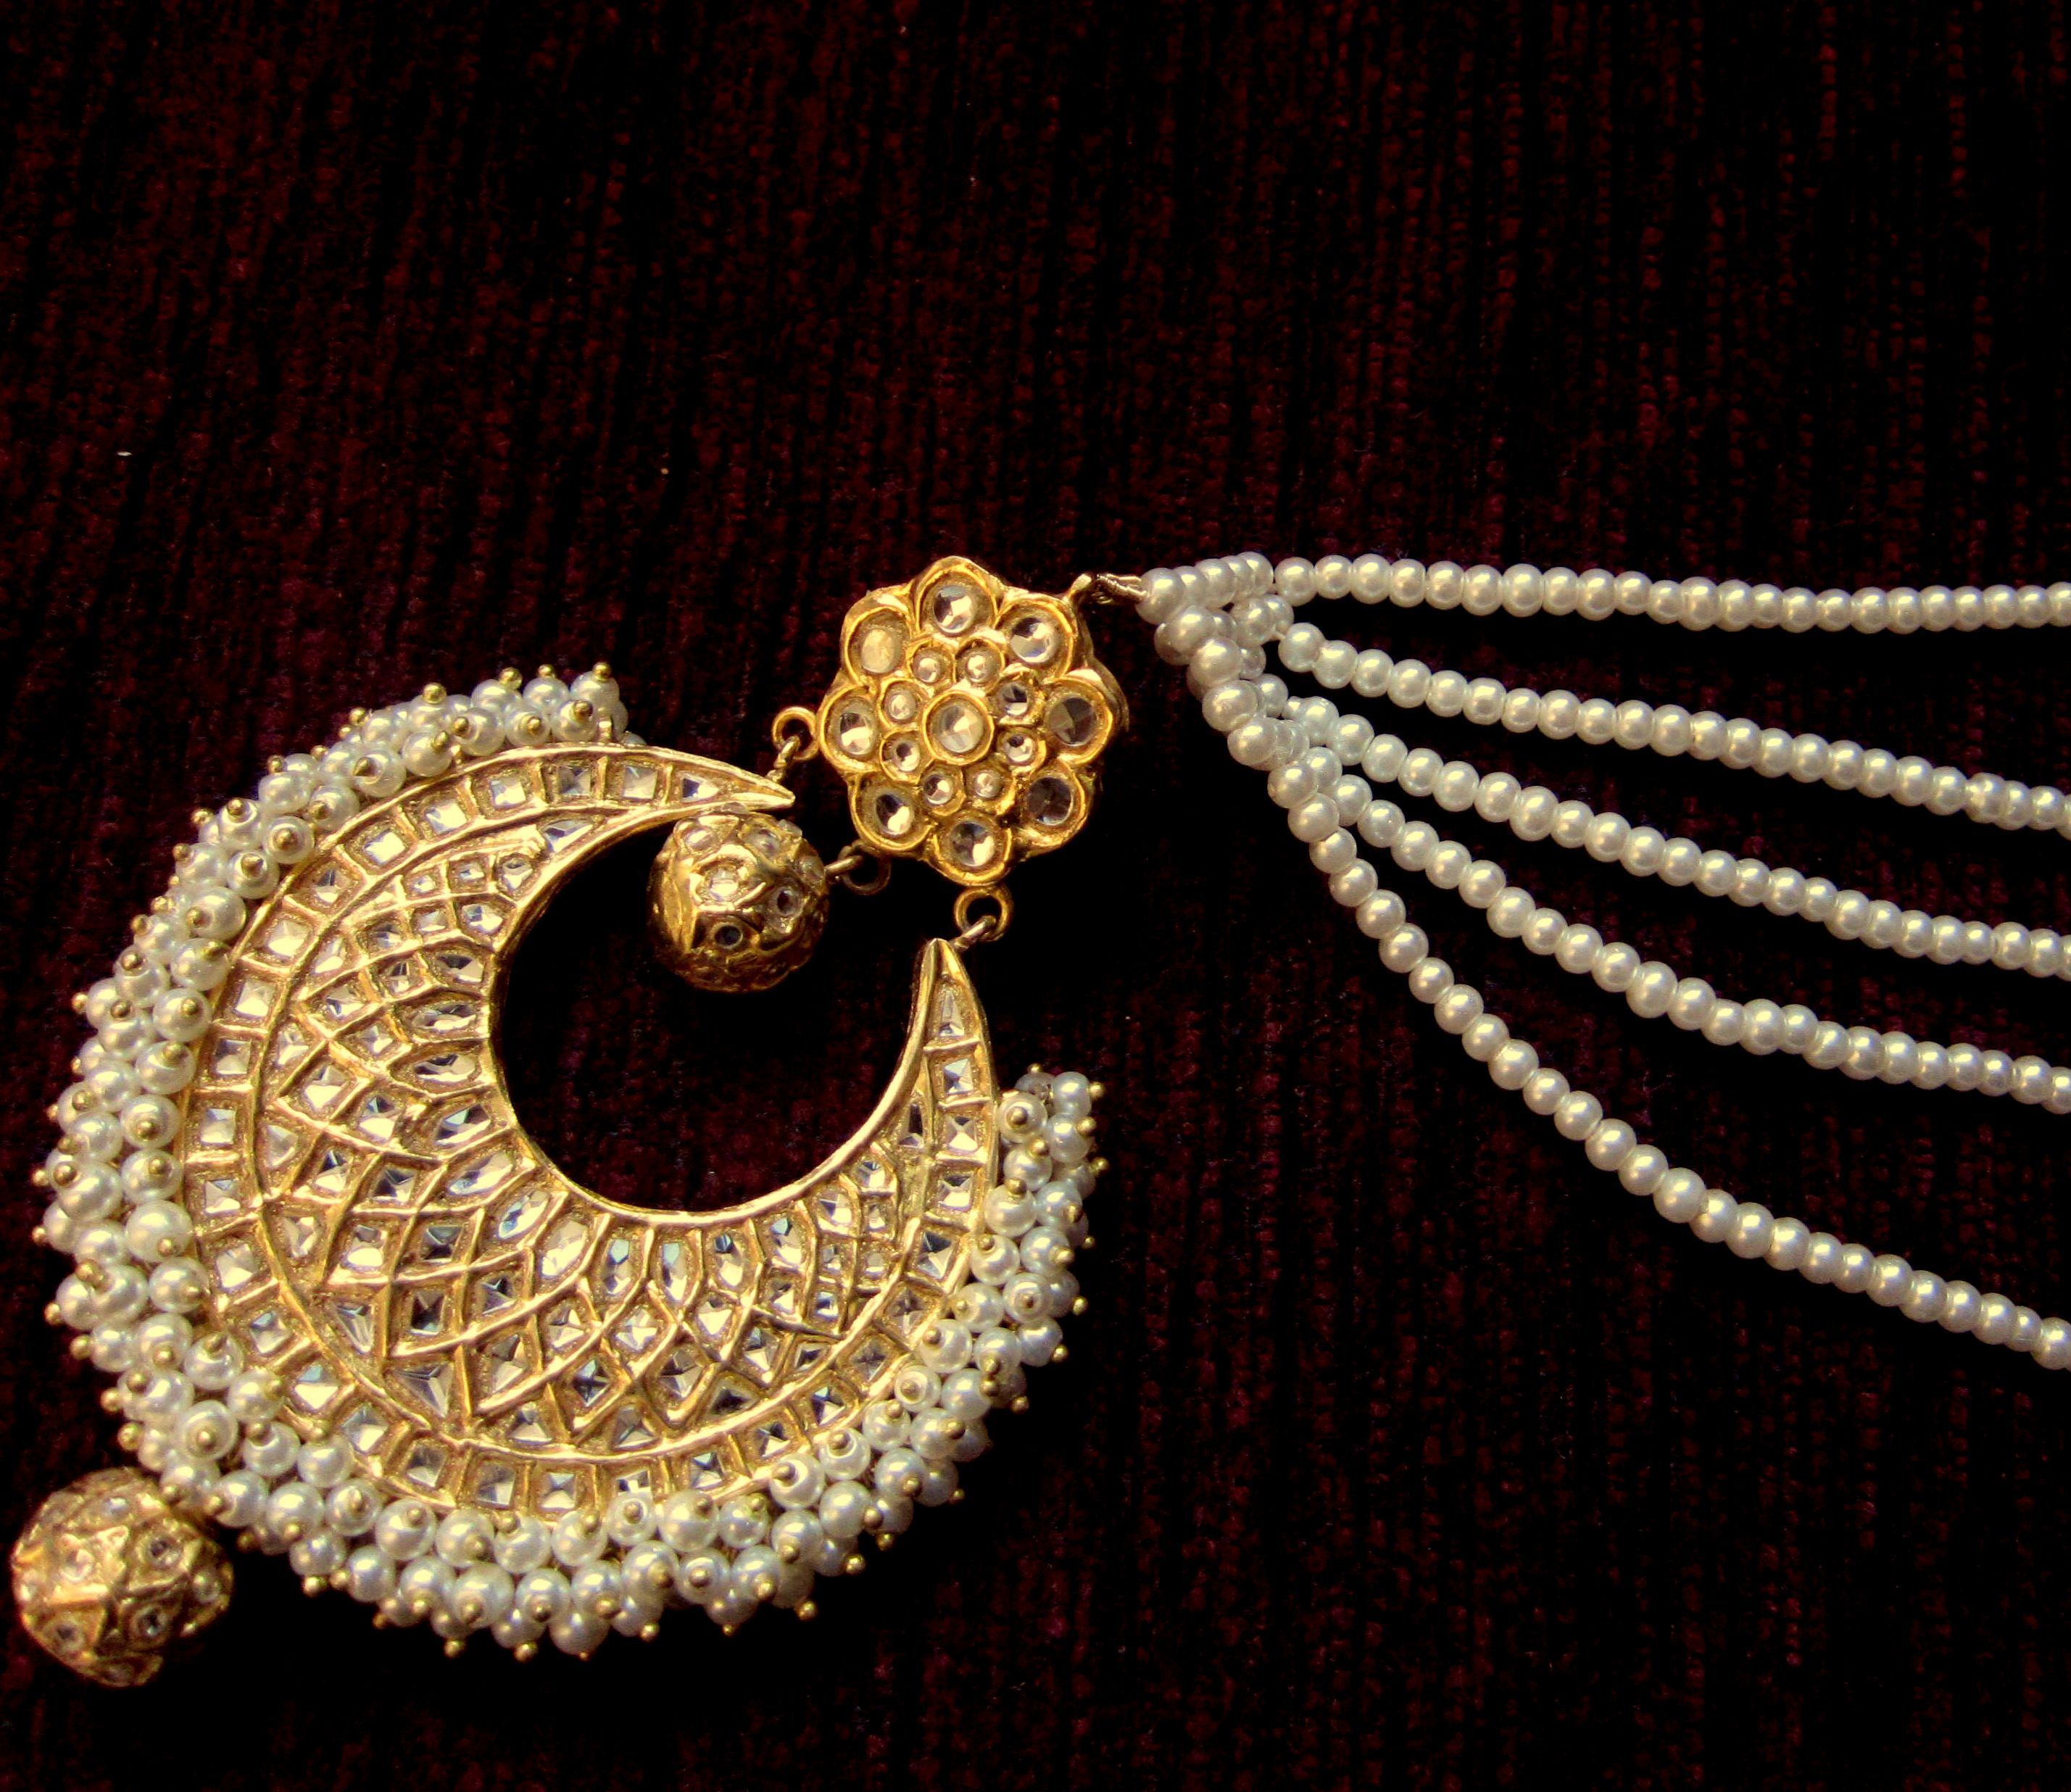 e30bc11dedb3b Gorgeous hand crafted kundan and pearls chand bala earrings with ...